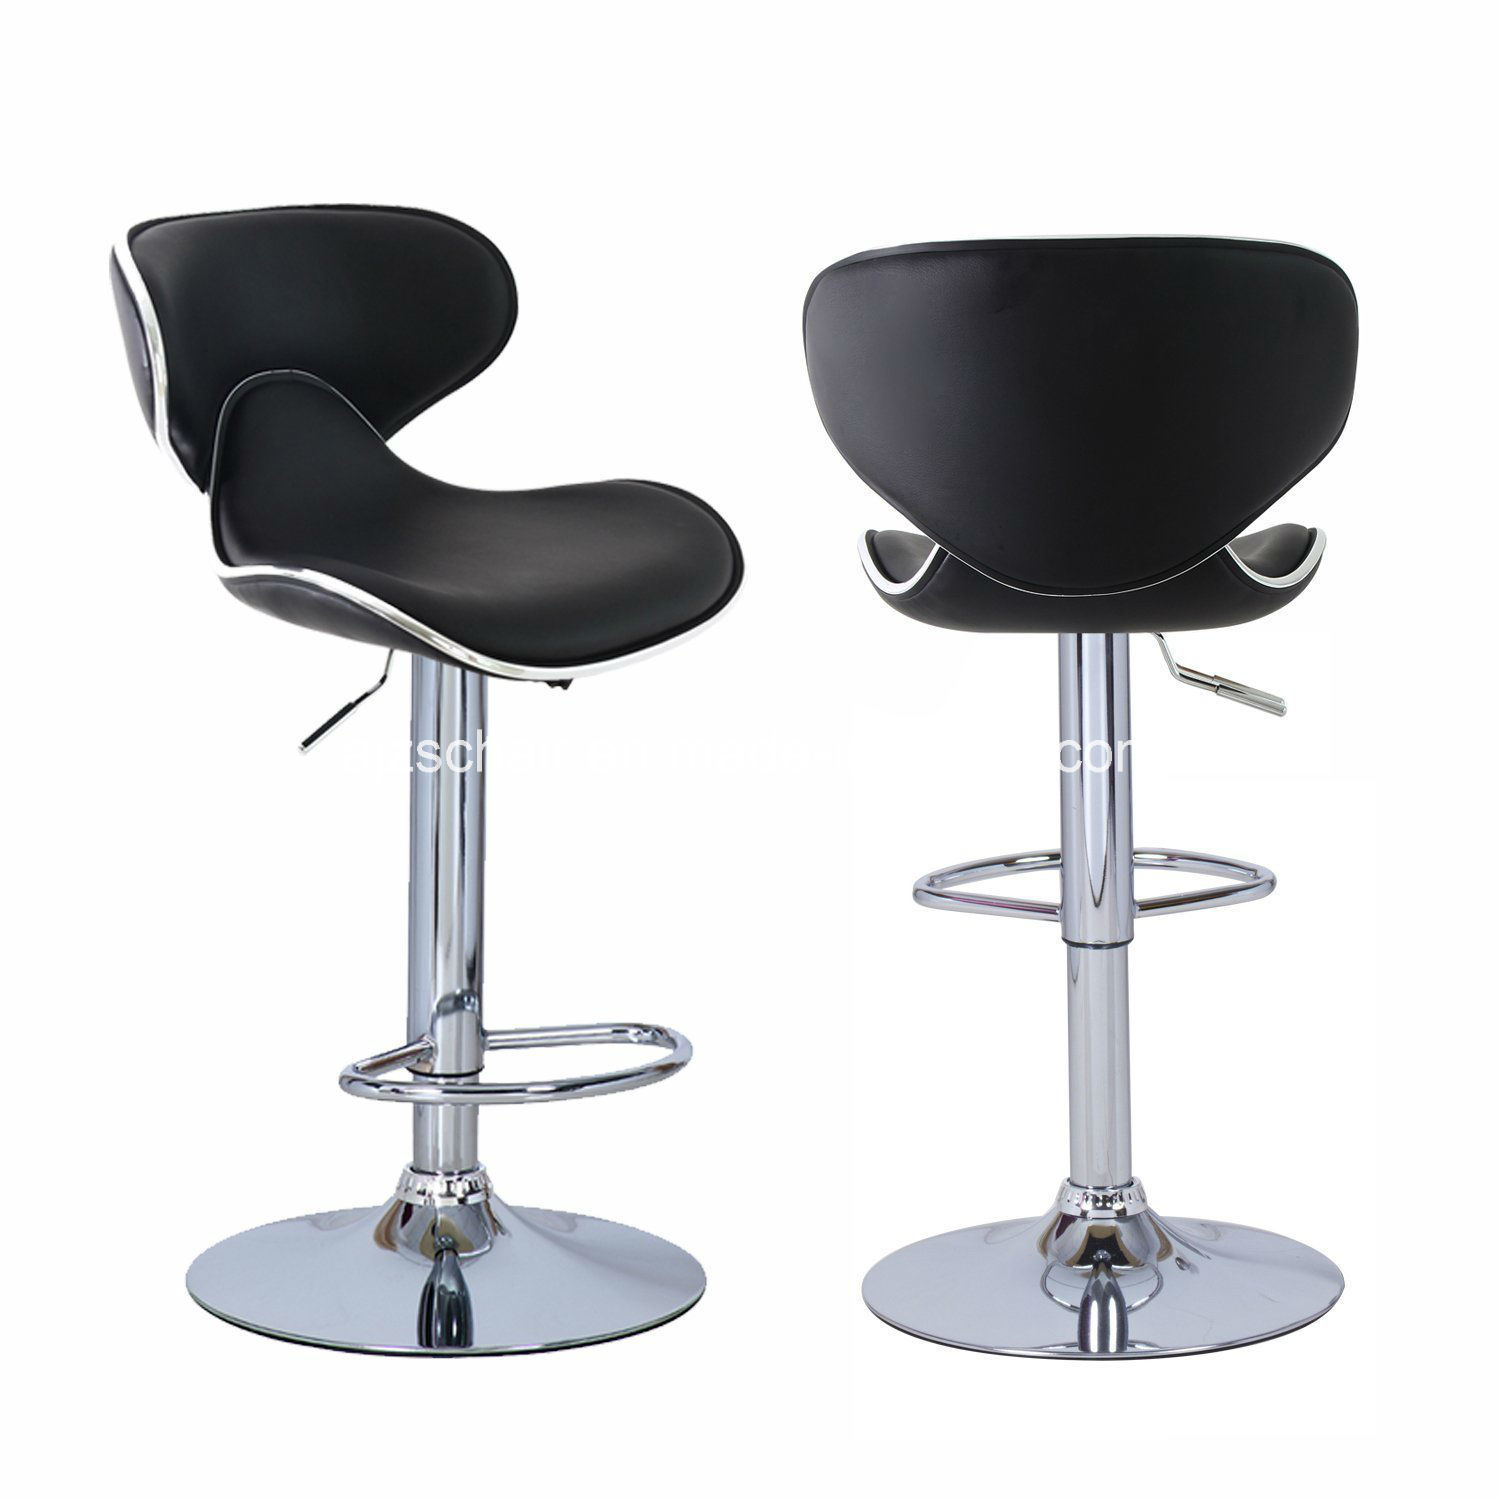 barstool flexback barstools stools category darafeev archives stool chairs product bar seating